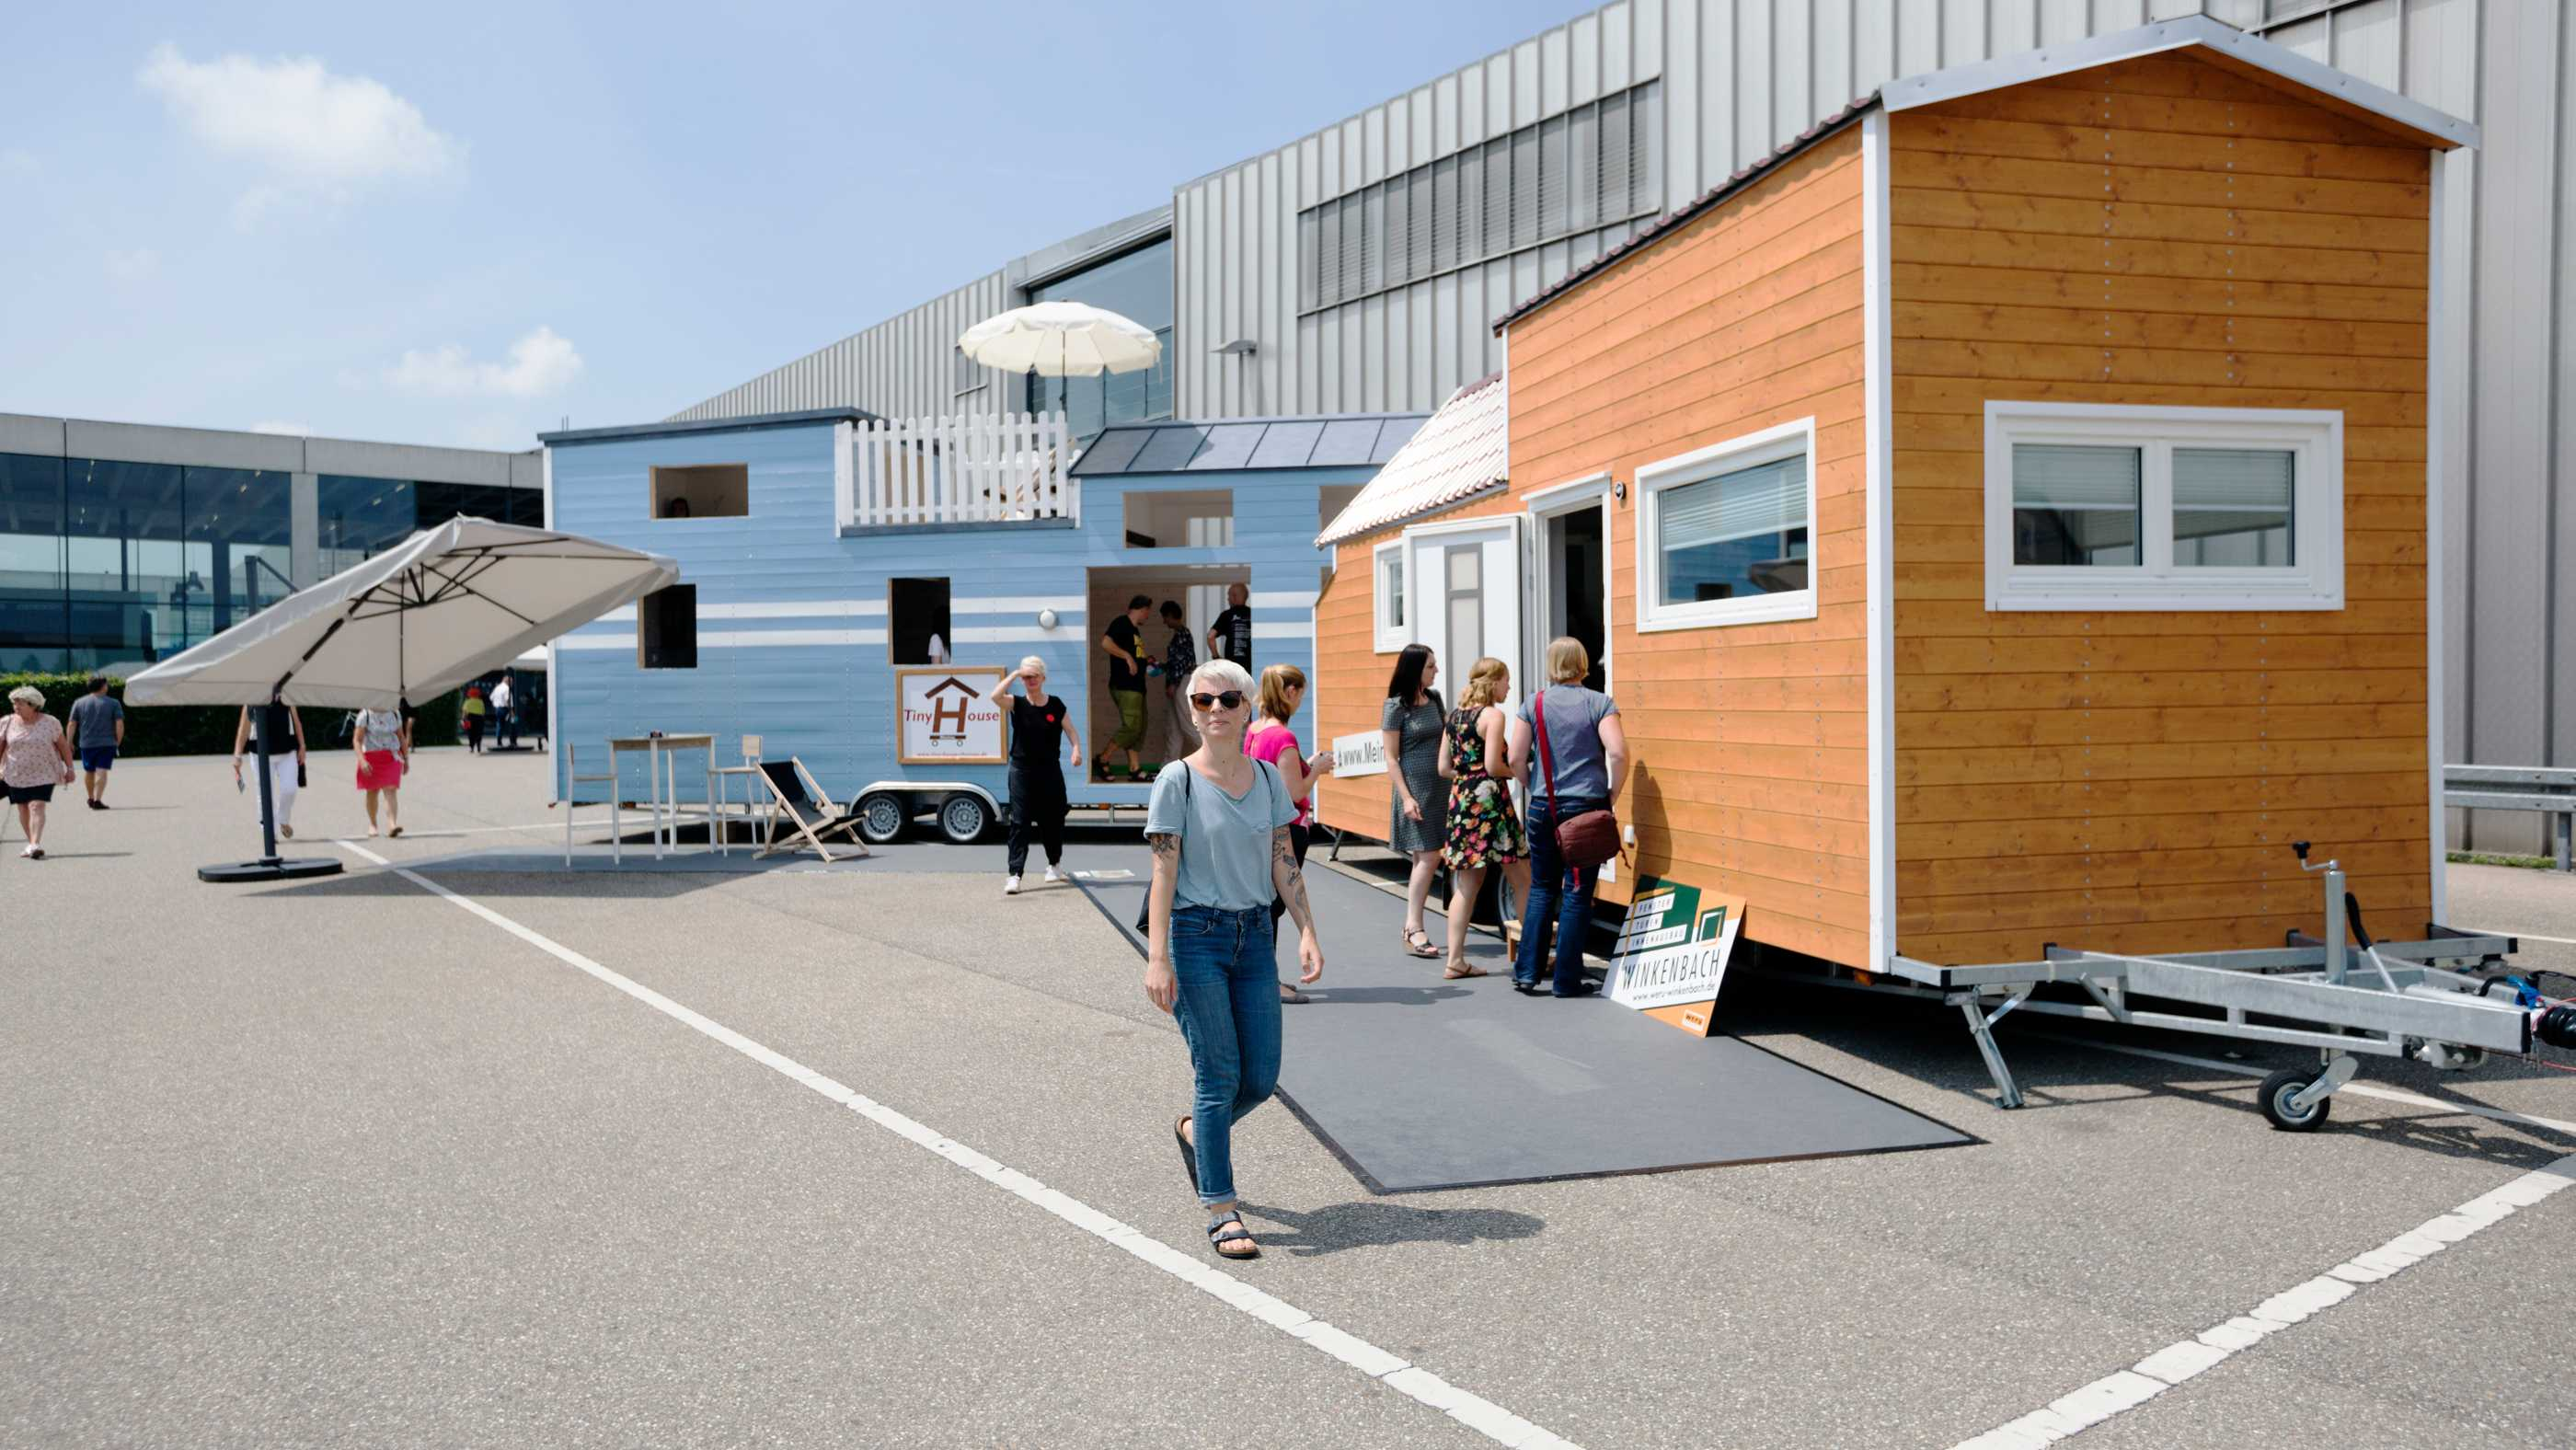 New Housing Festival in Karlsruhe